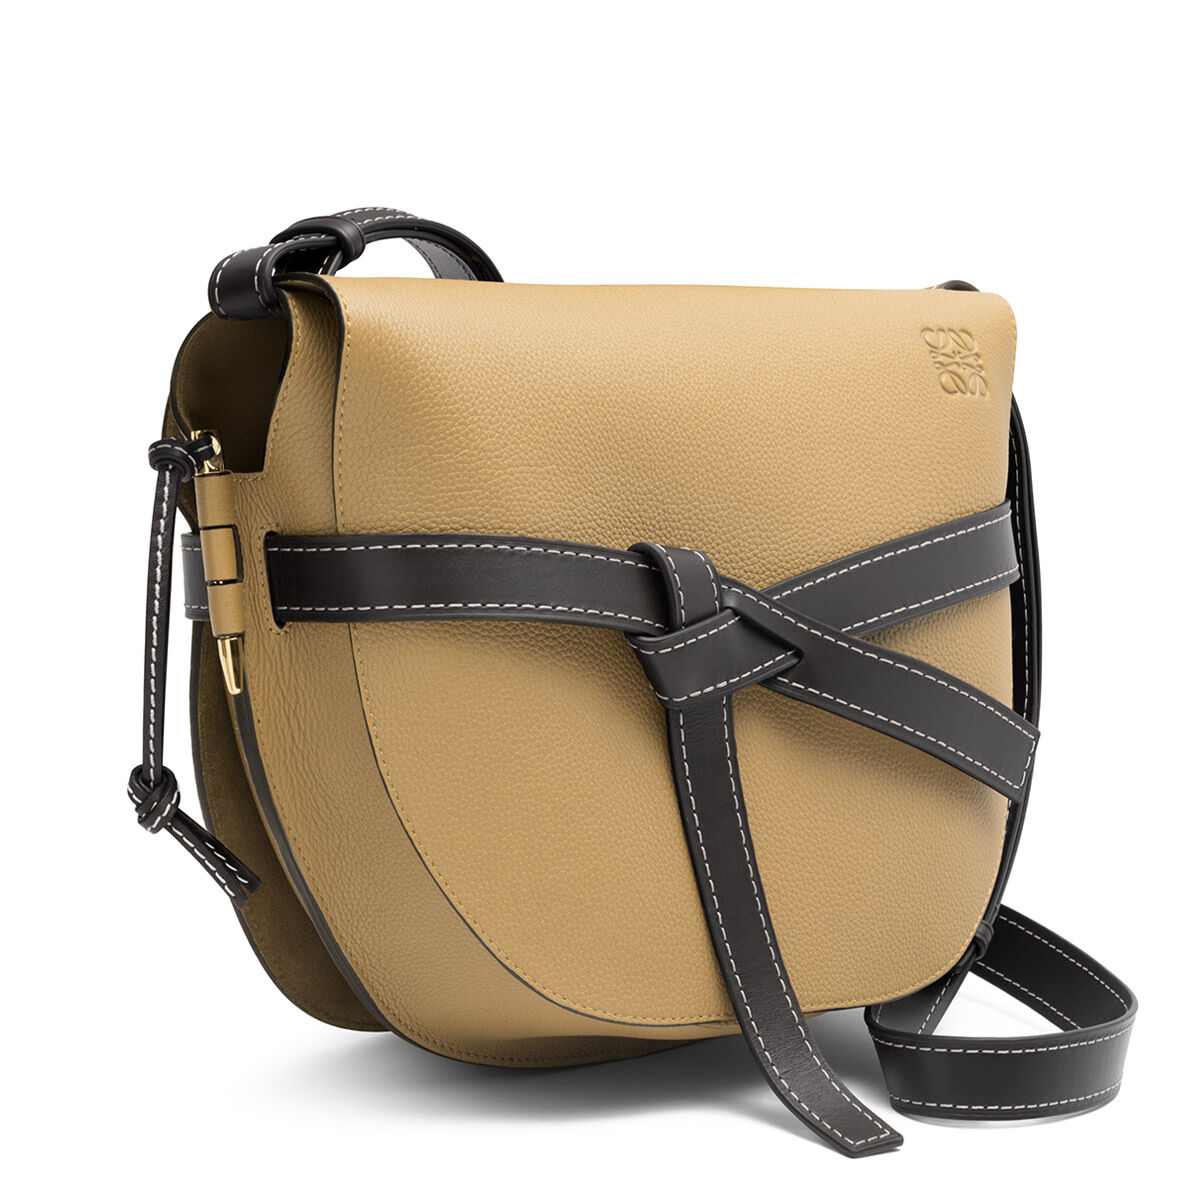 LOEWE Bolso Gate Mocca/Negro all